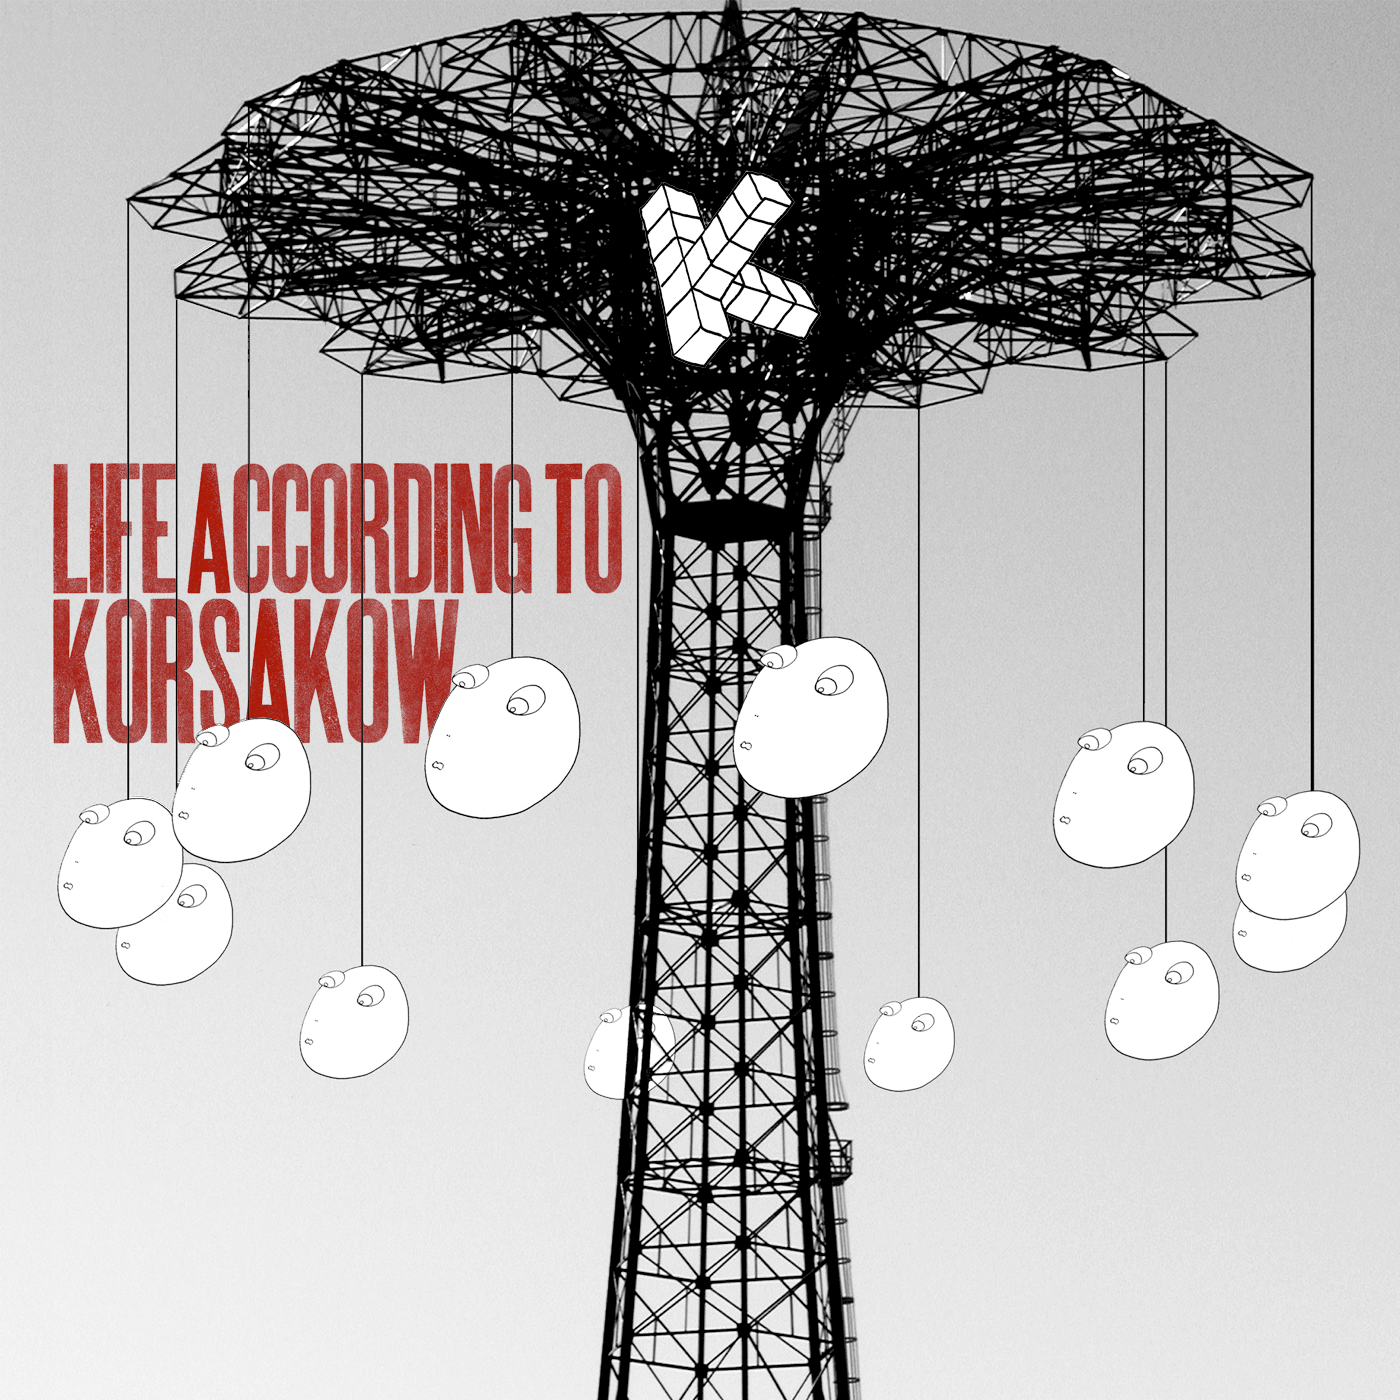 Life According to Korsakow